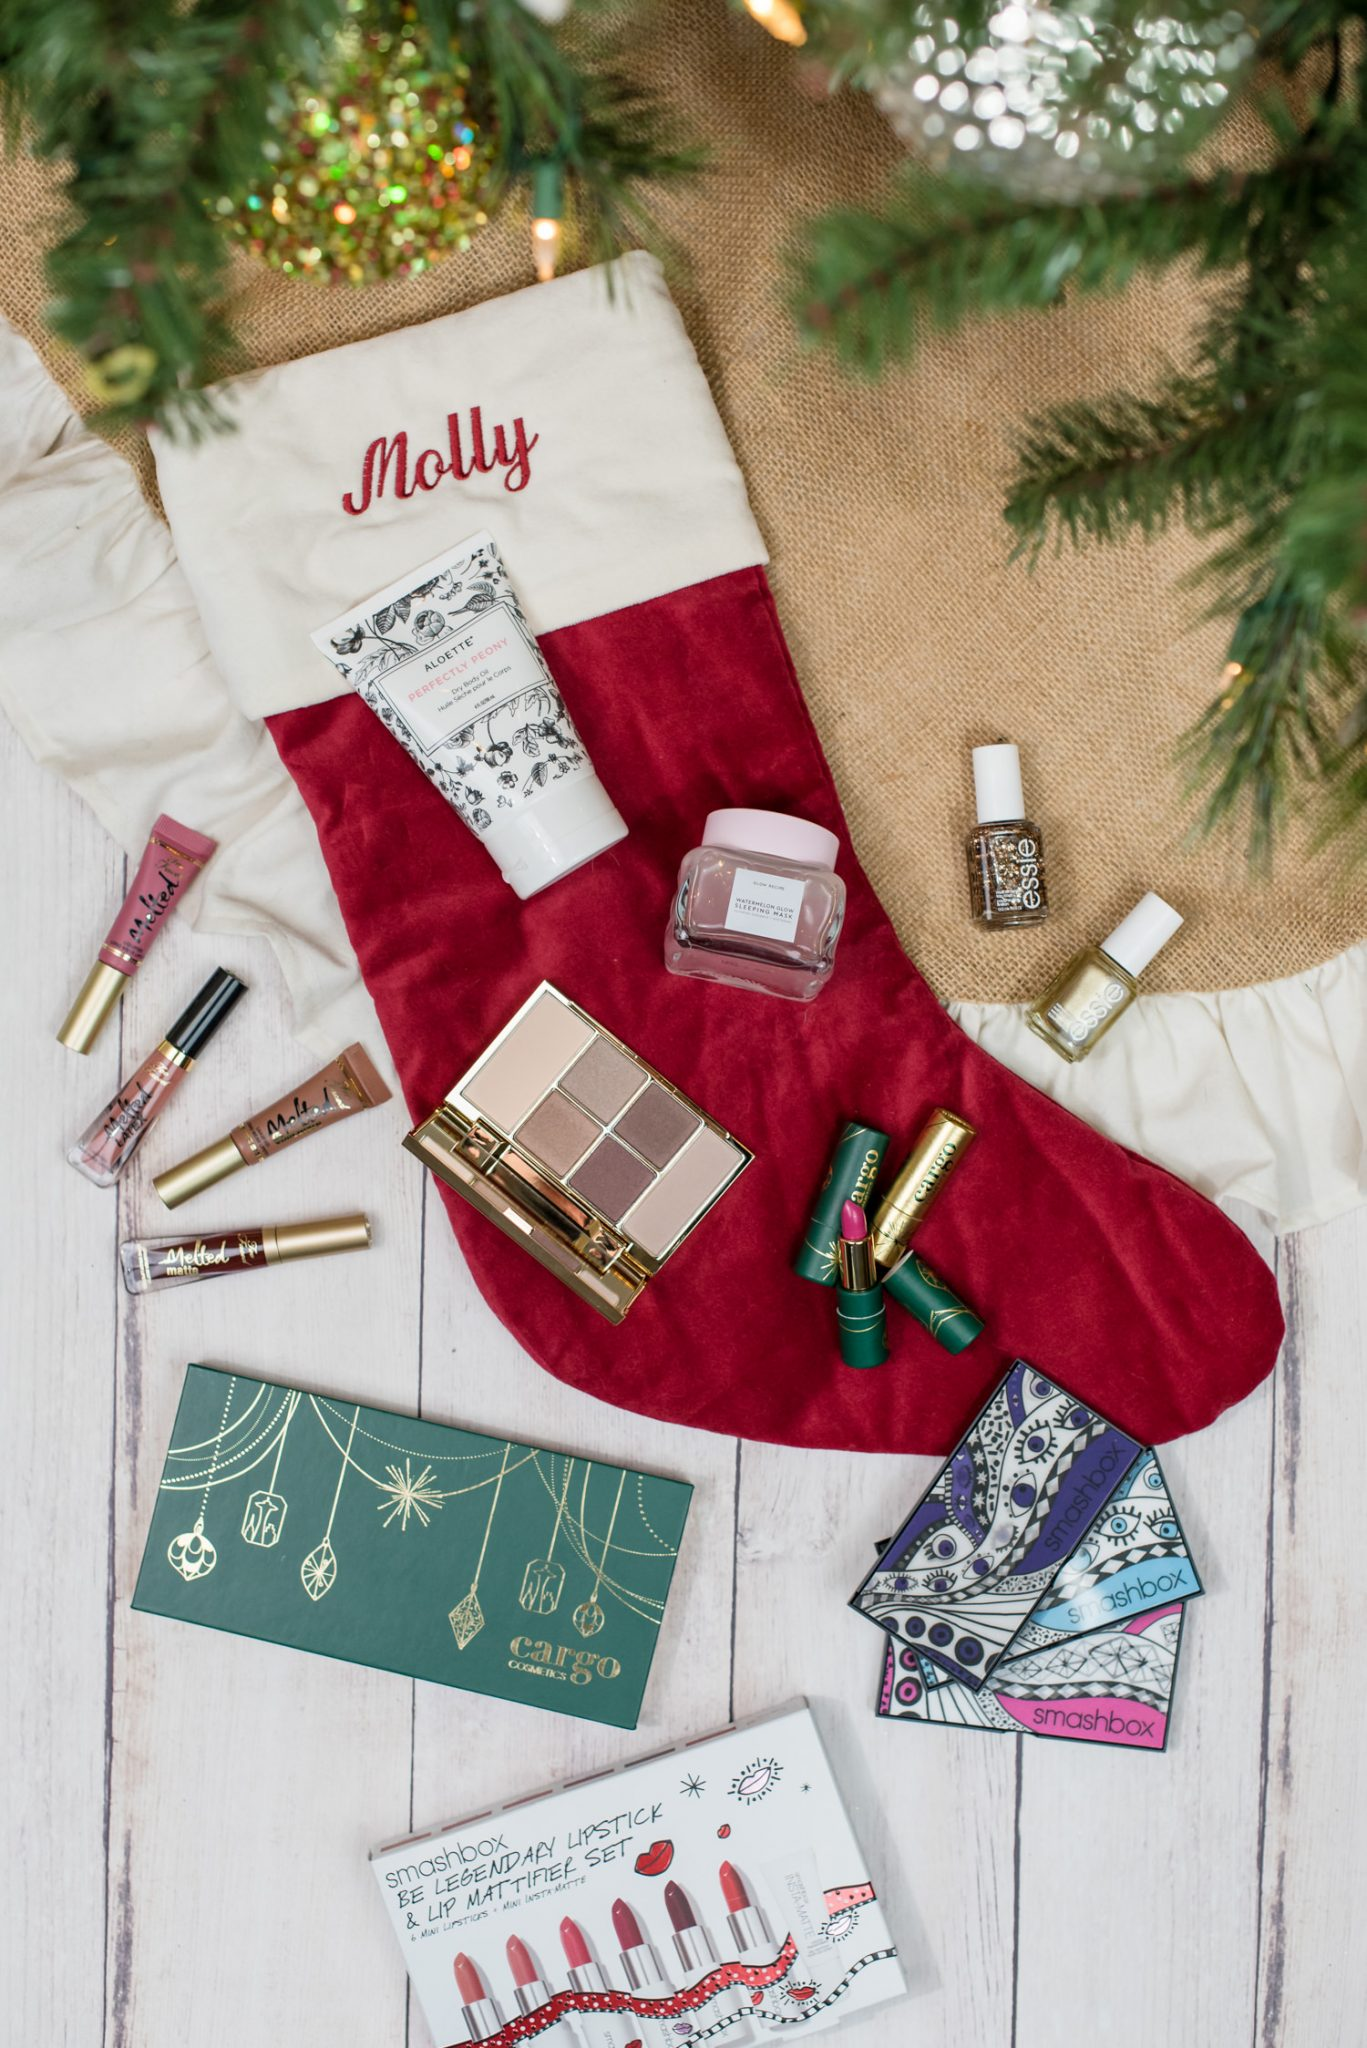 10 Stocking Stuffers for the Beauty Lover // Miss Molly Moon